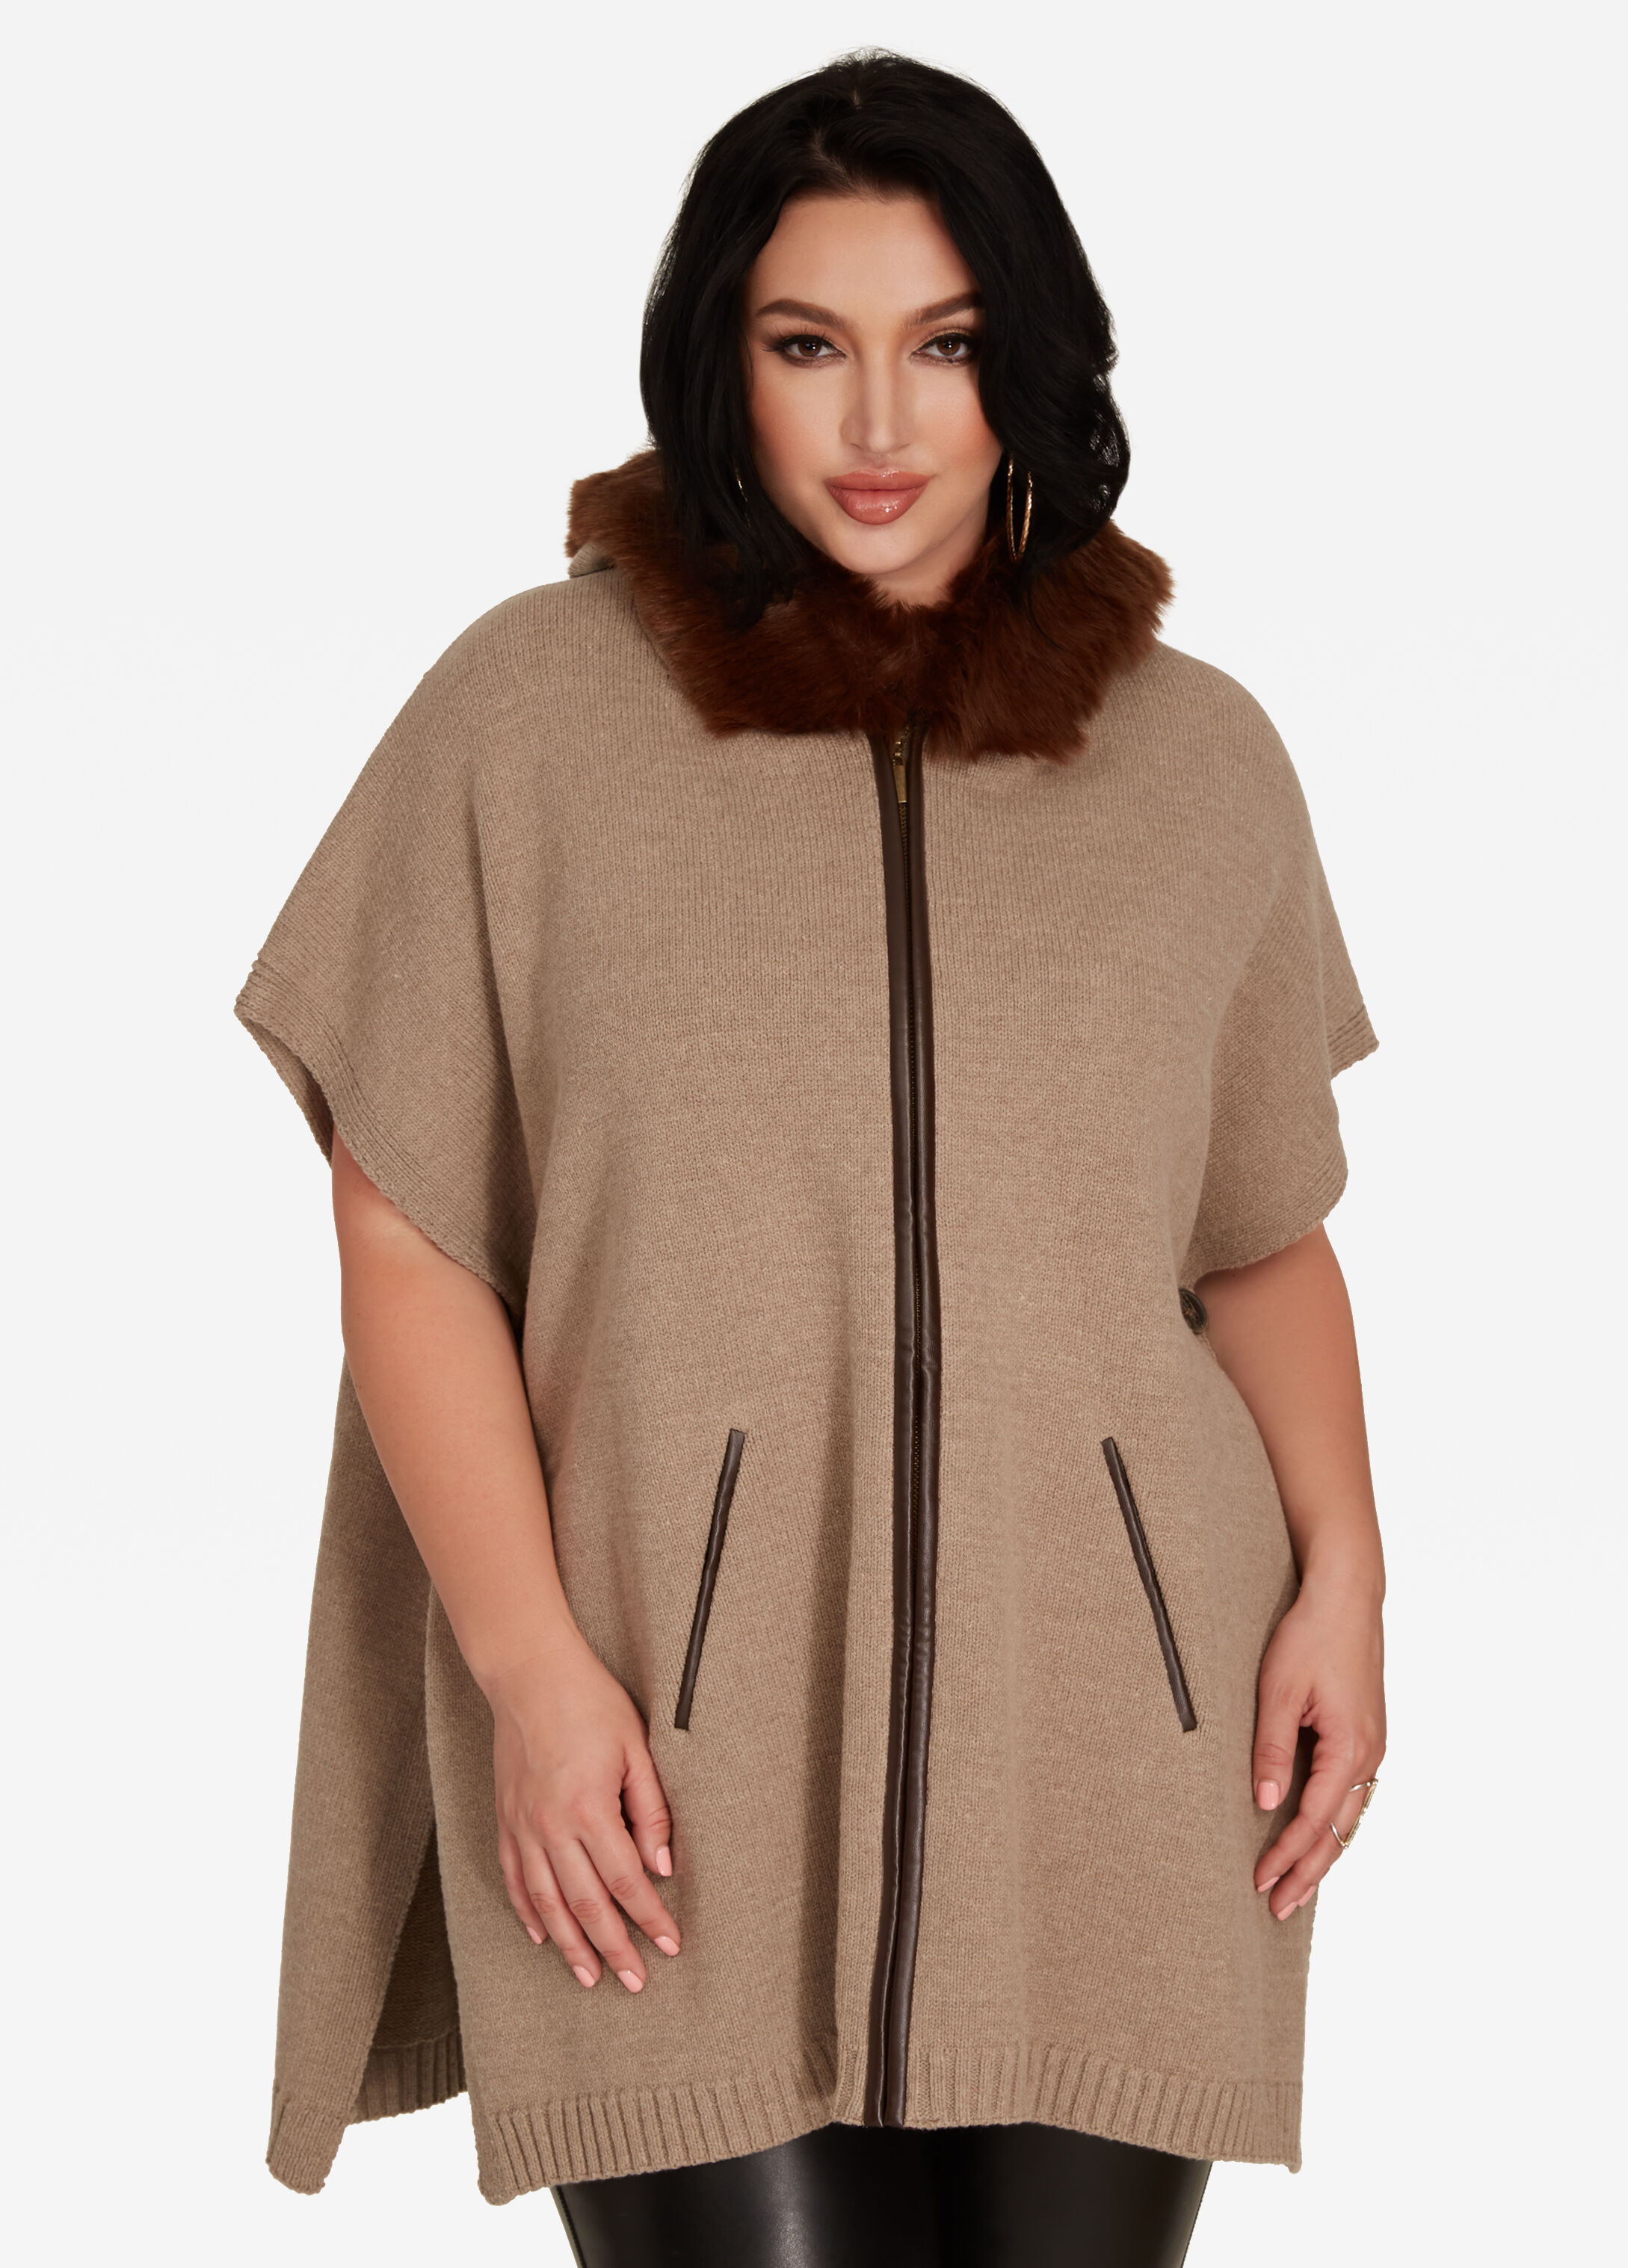 Affordable Plus Size Clothing On Sale